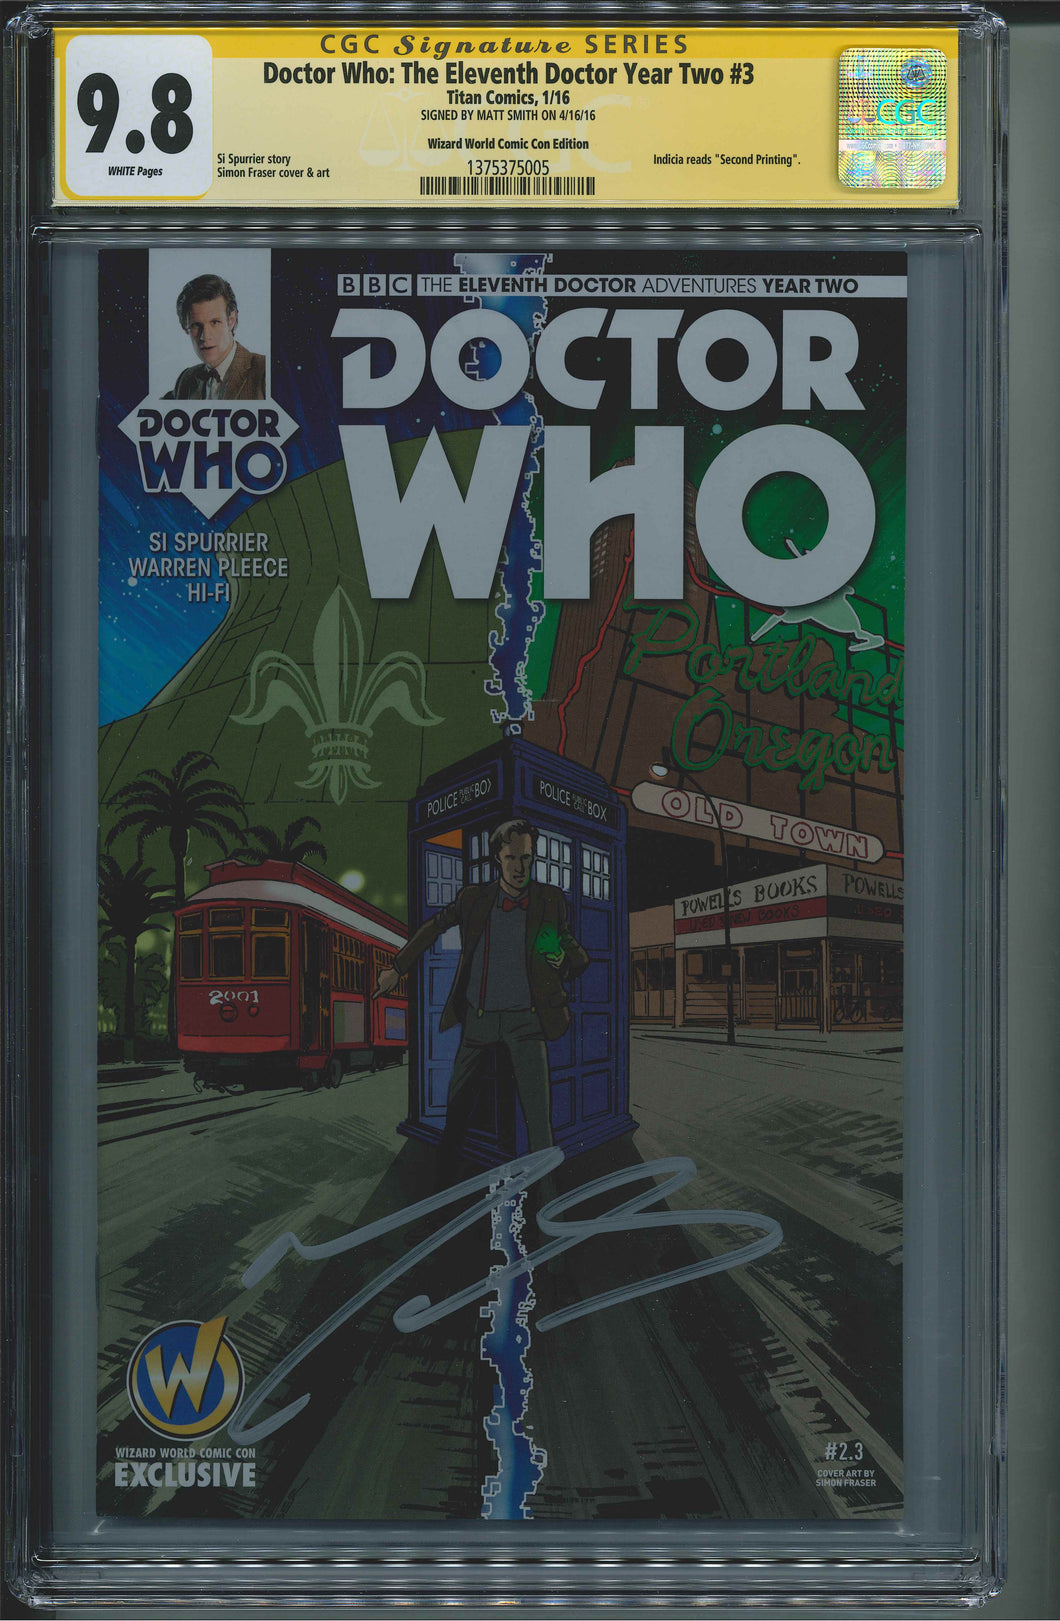 Doctor Who: The Eleventh Doctor Year Two #3 CGC 9.8 Signed by Matt Smith